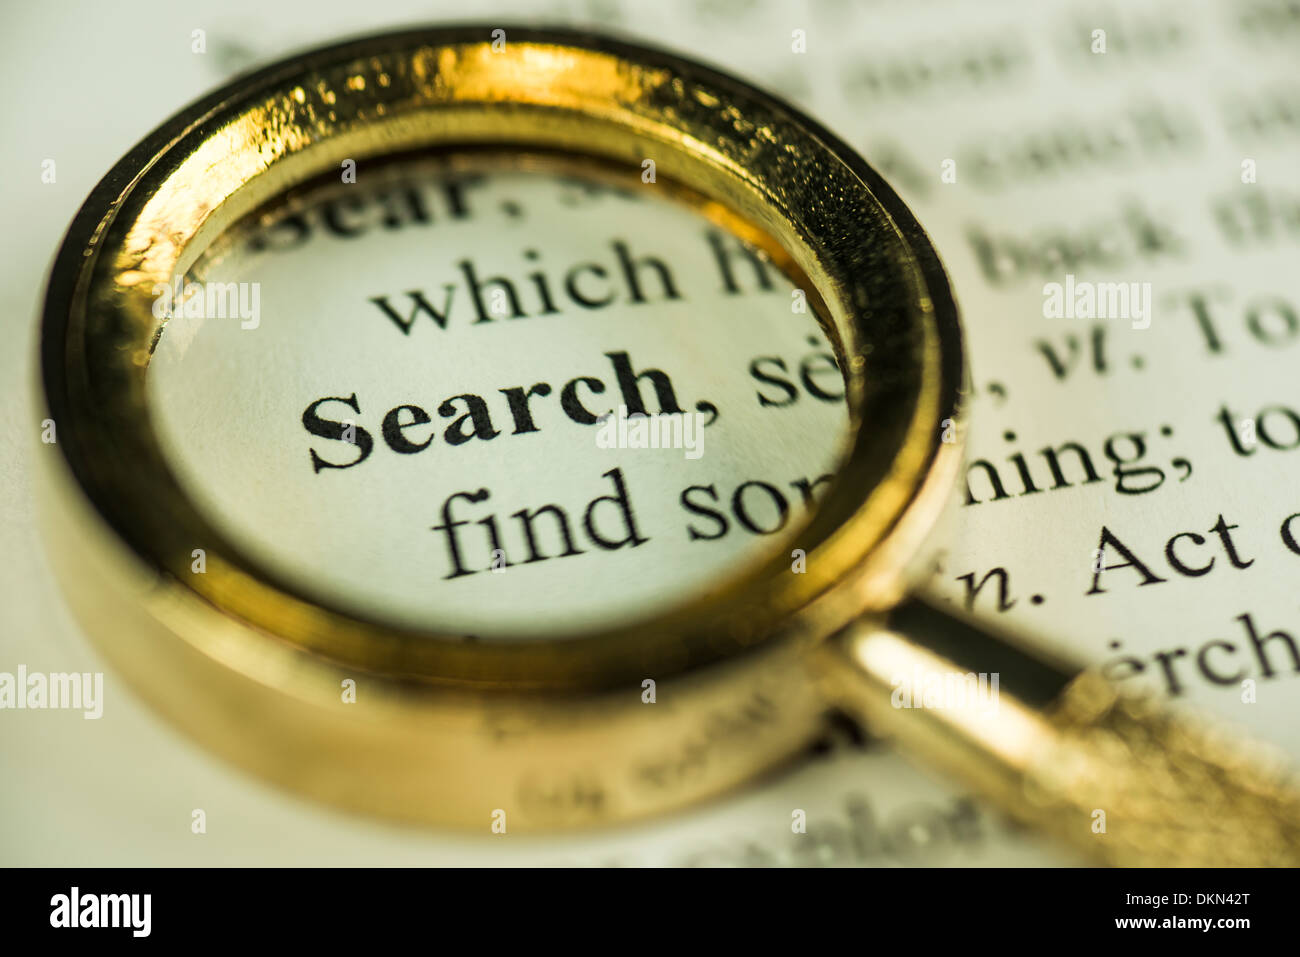 Macro Image Of A Magnifying Glass Over The Search Word In A Dictionary - Stock Image